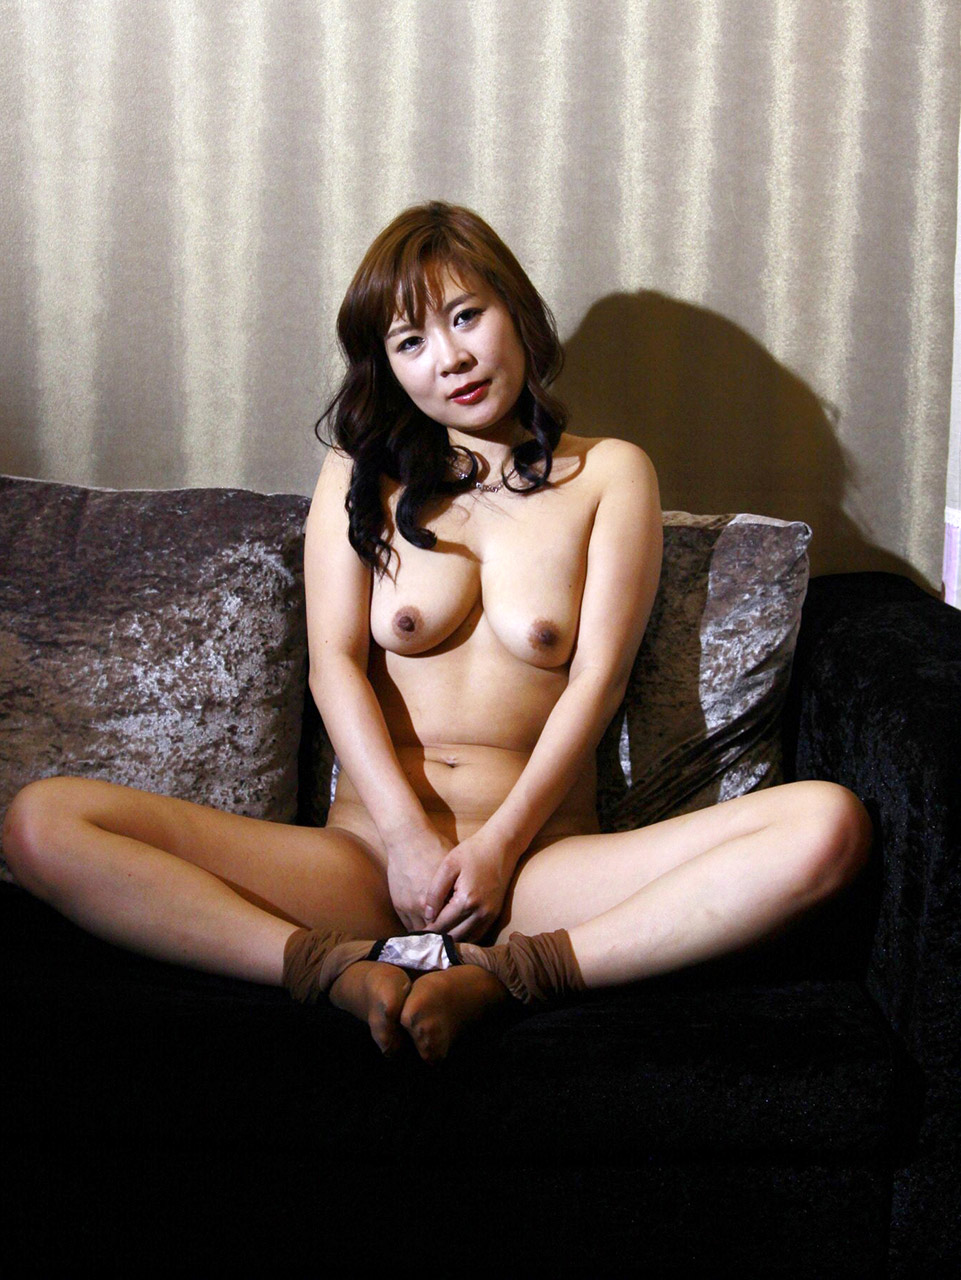 Babe.................. jav hd kores boobs that's the